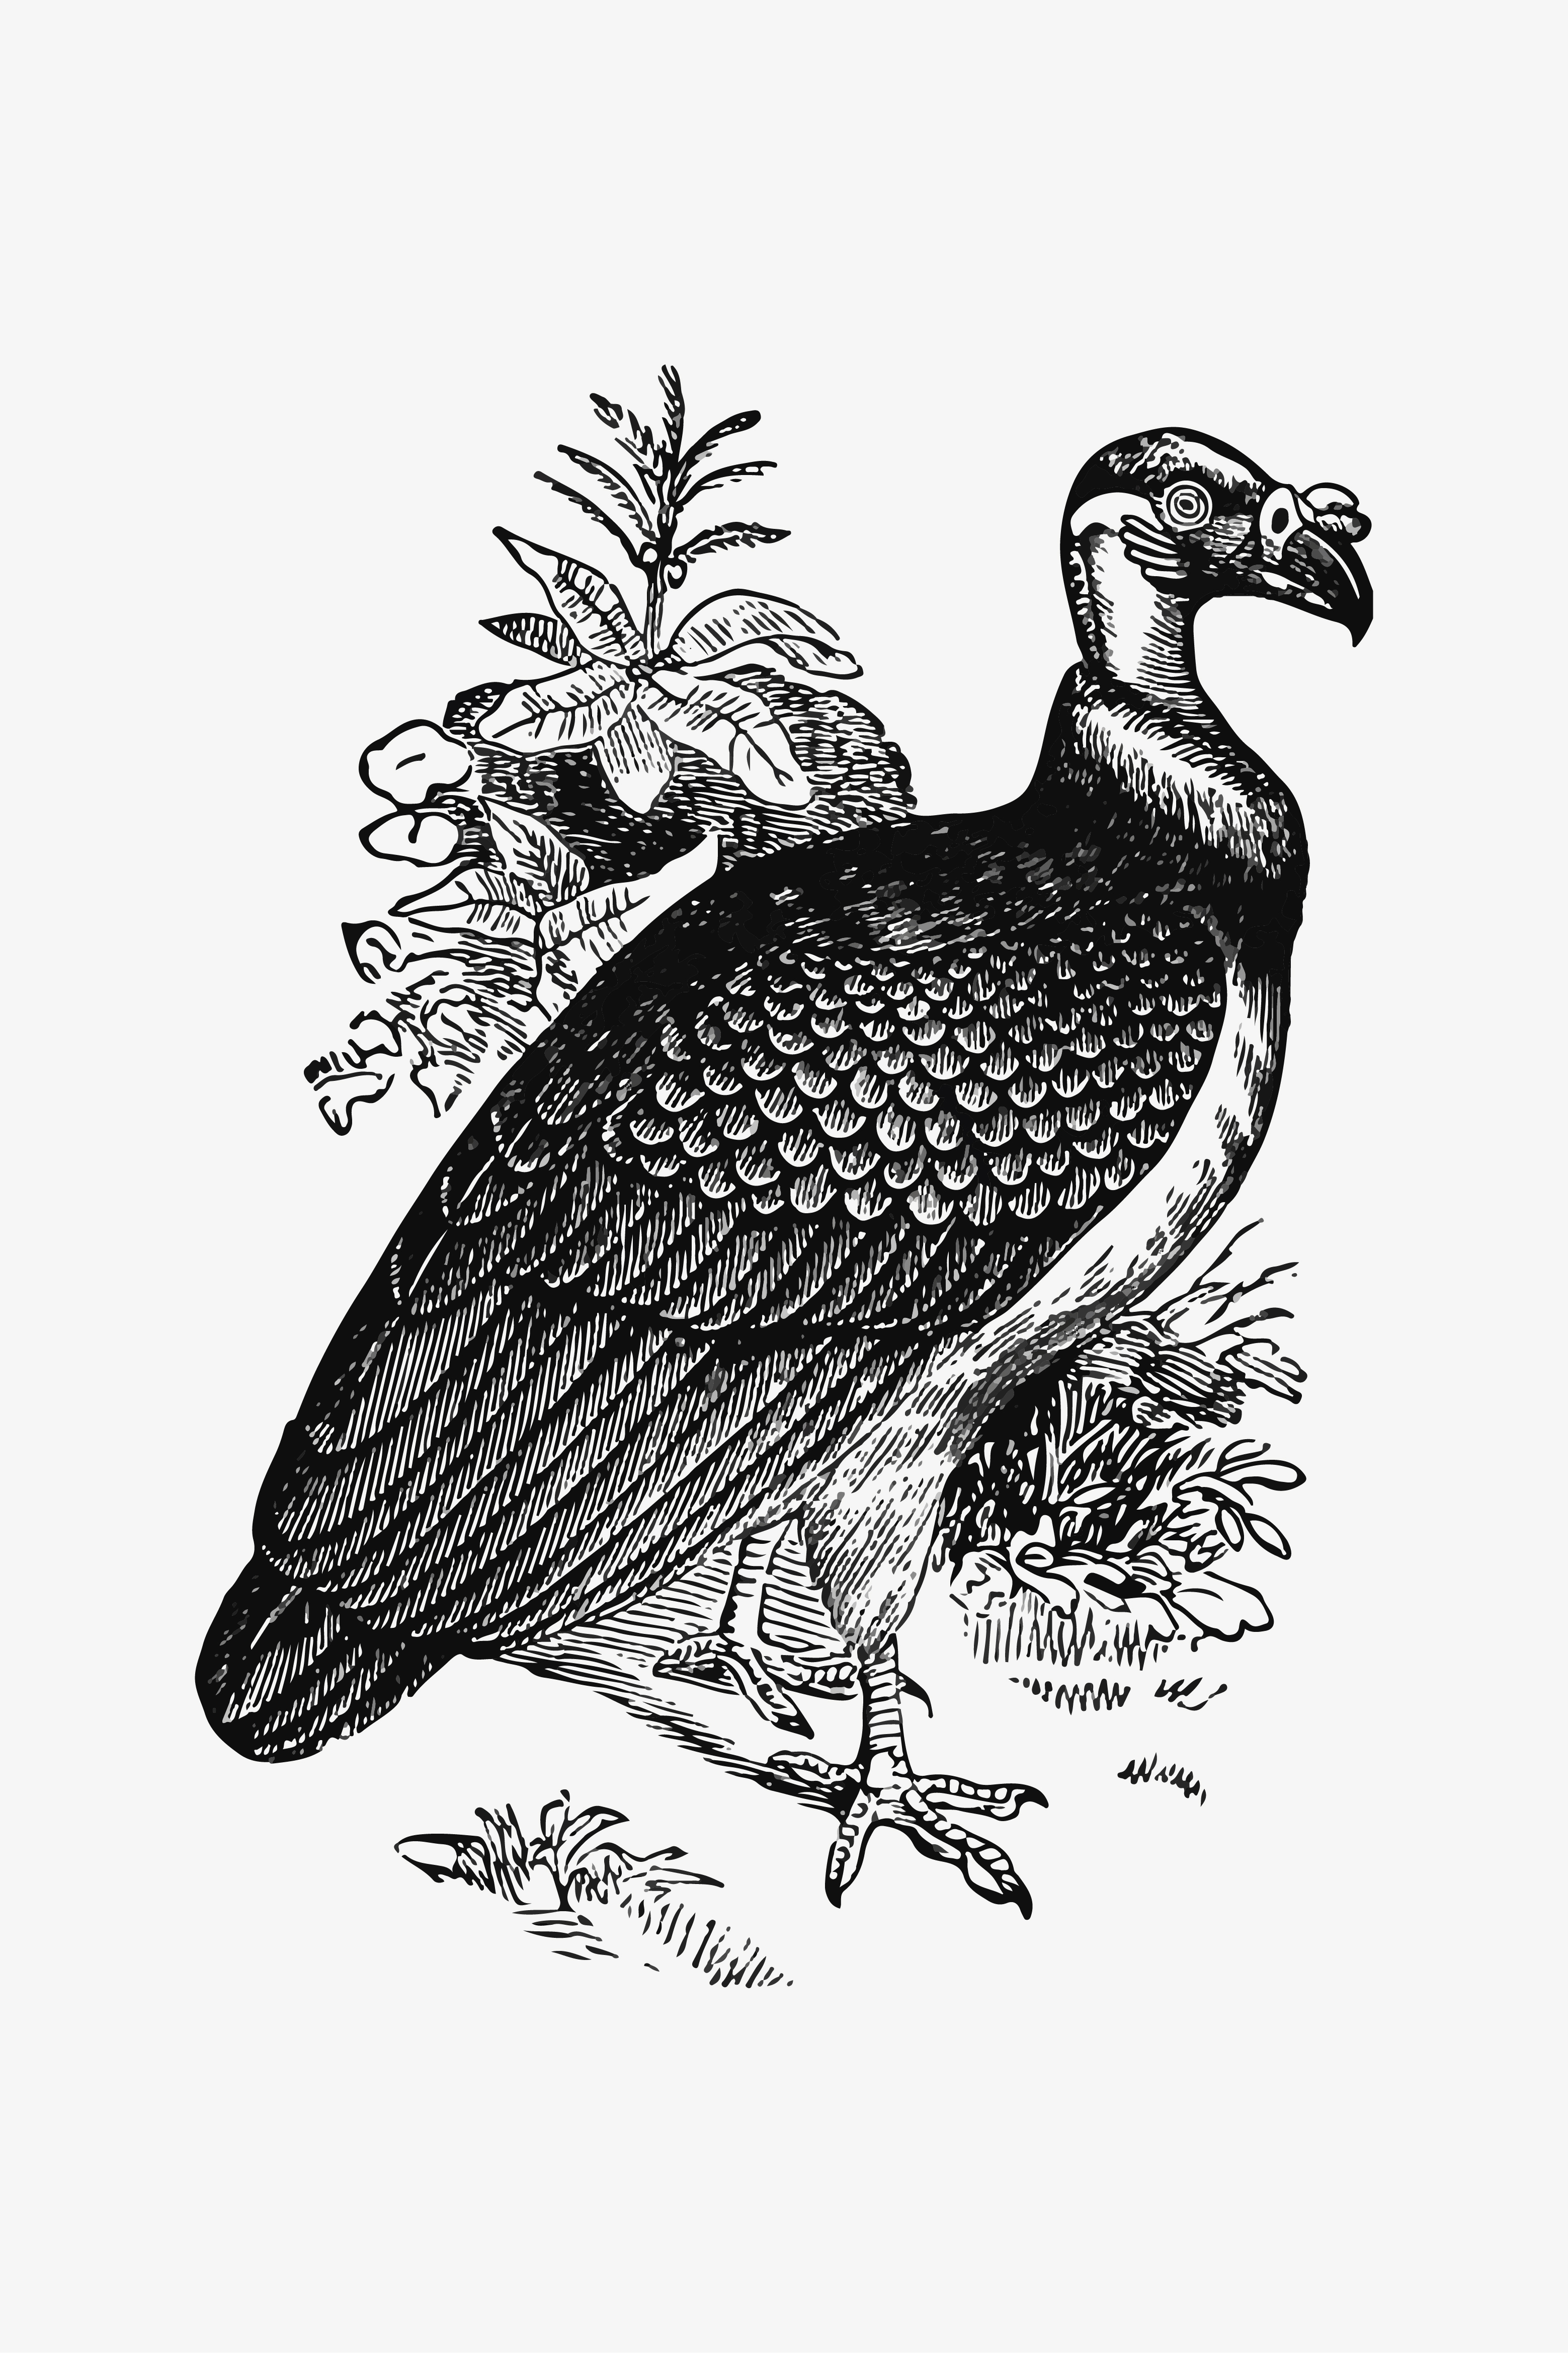 vulture drawing vulture images free vectors stock photos psd drawing vulture